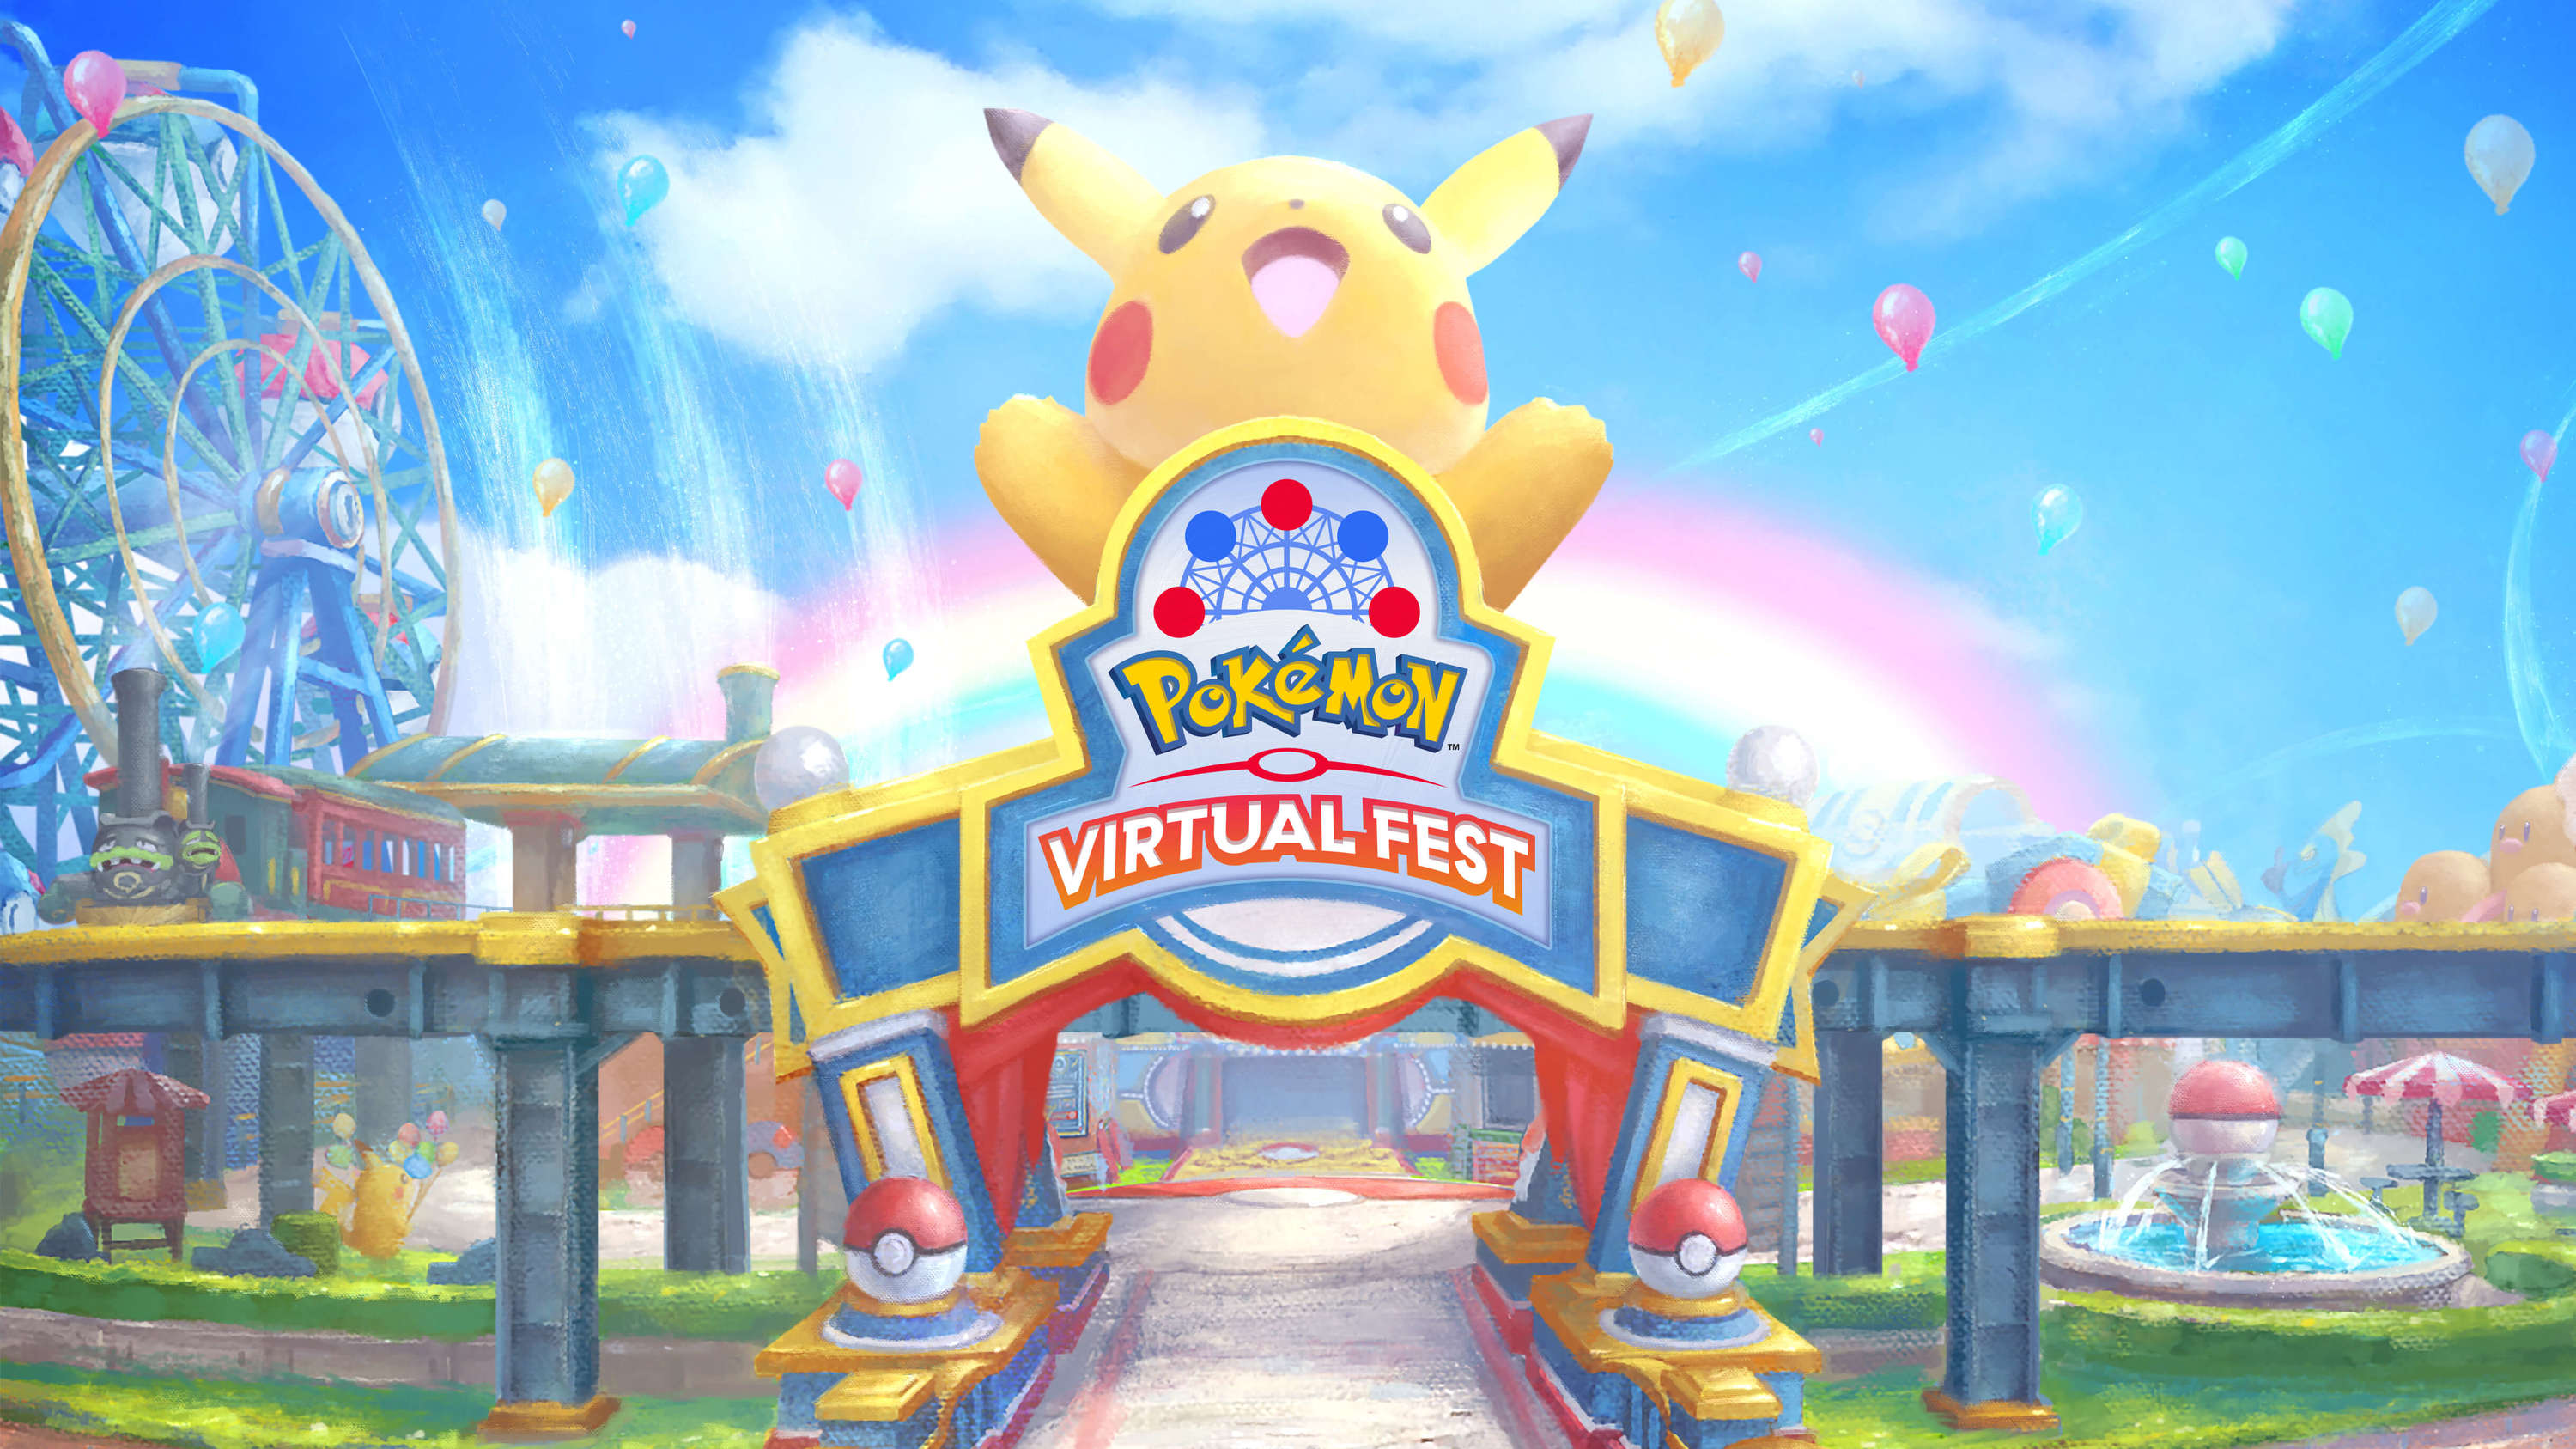 Visit the virtual Pokémon theme park for games, Pikachu dance shows and Pokémon battles